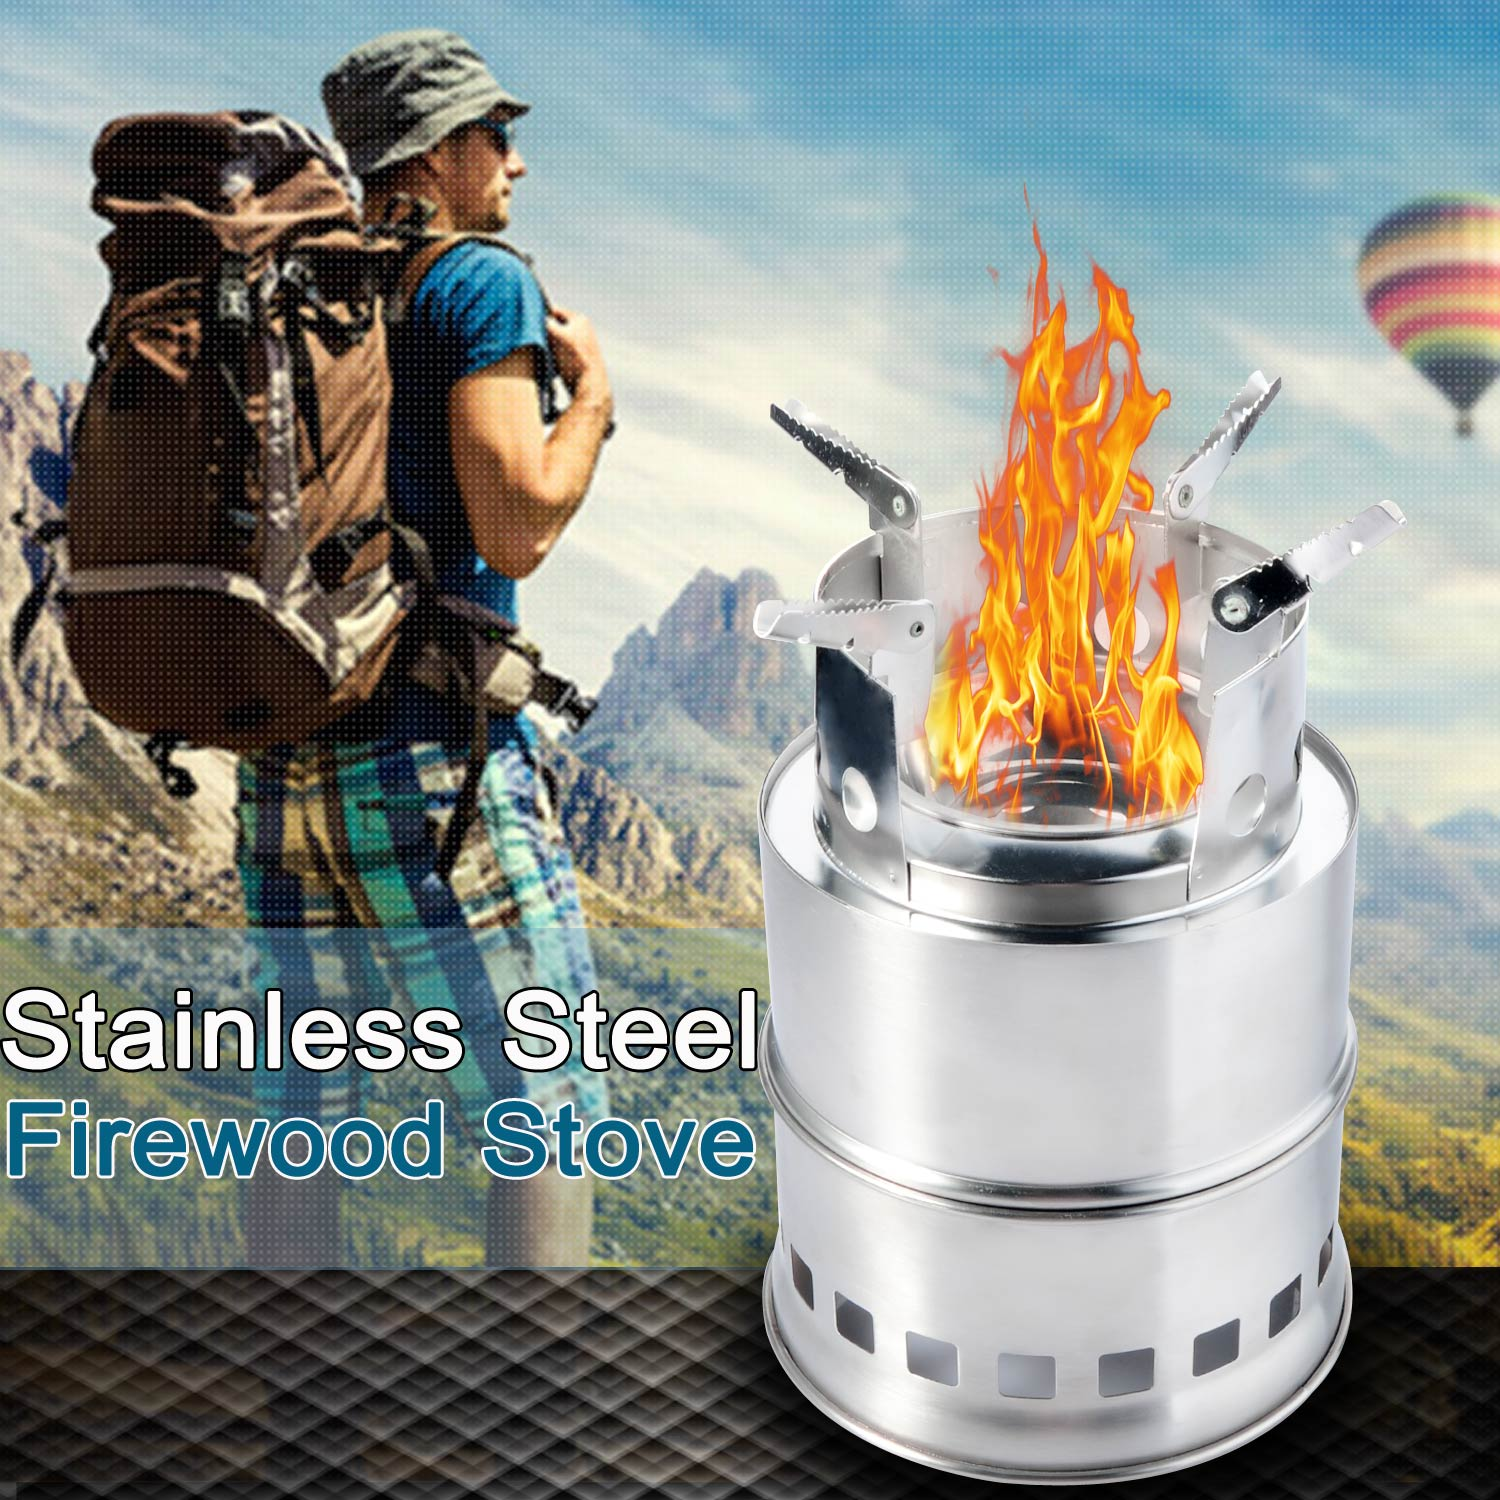 Lightweight Portable Outdoor Stoves Wood Stove Firewoods Furnace Collapsible Stainless Steel Backpacking Picnic Camping Stove P5